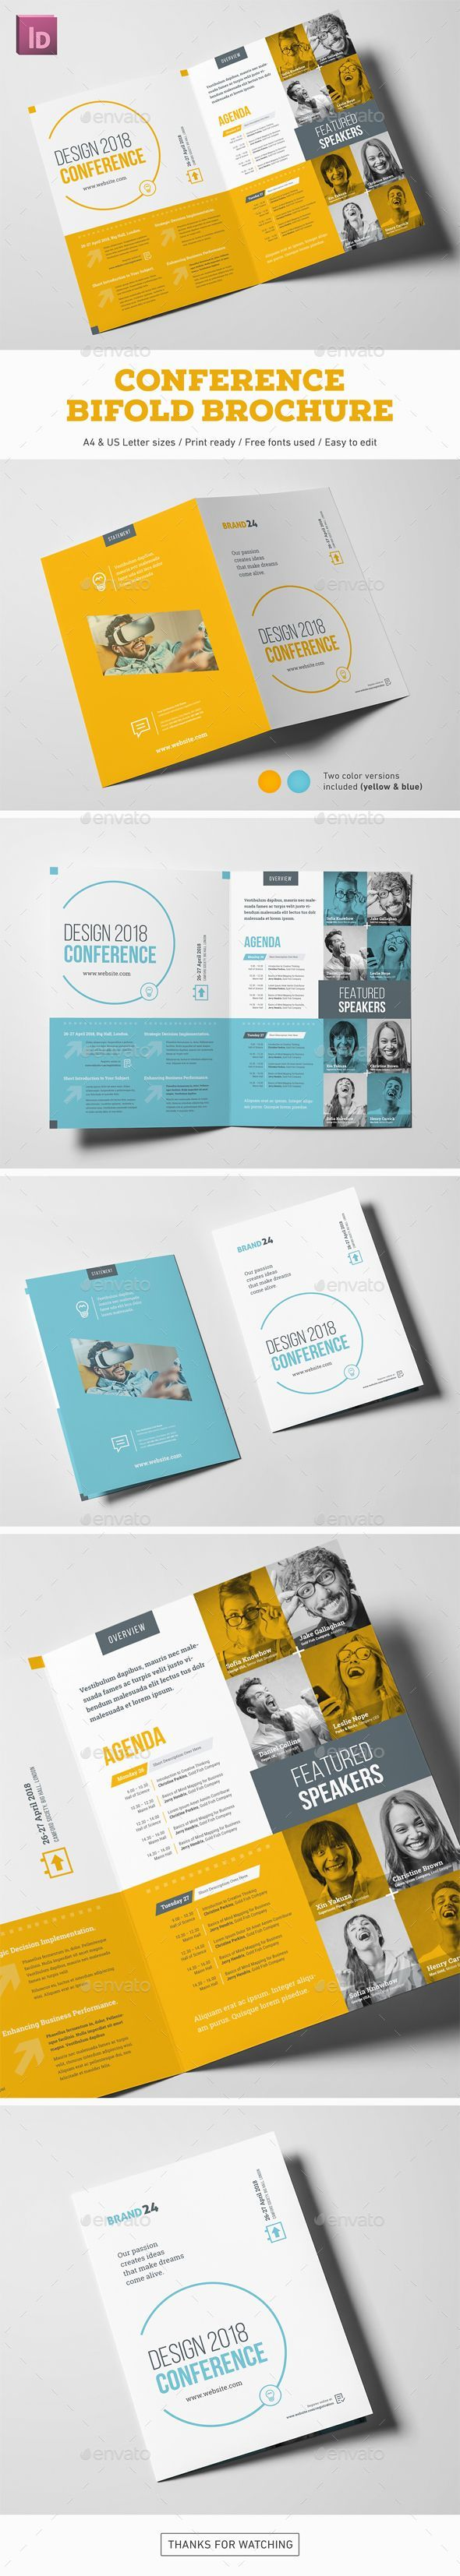 Image result for corporate branded agenda template